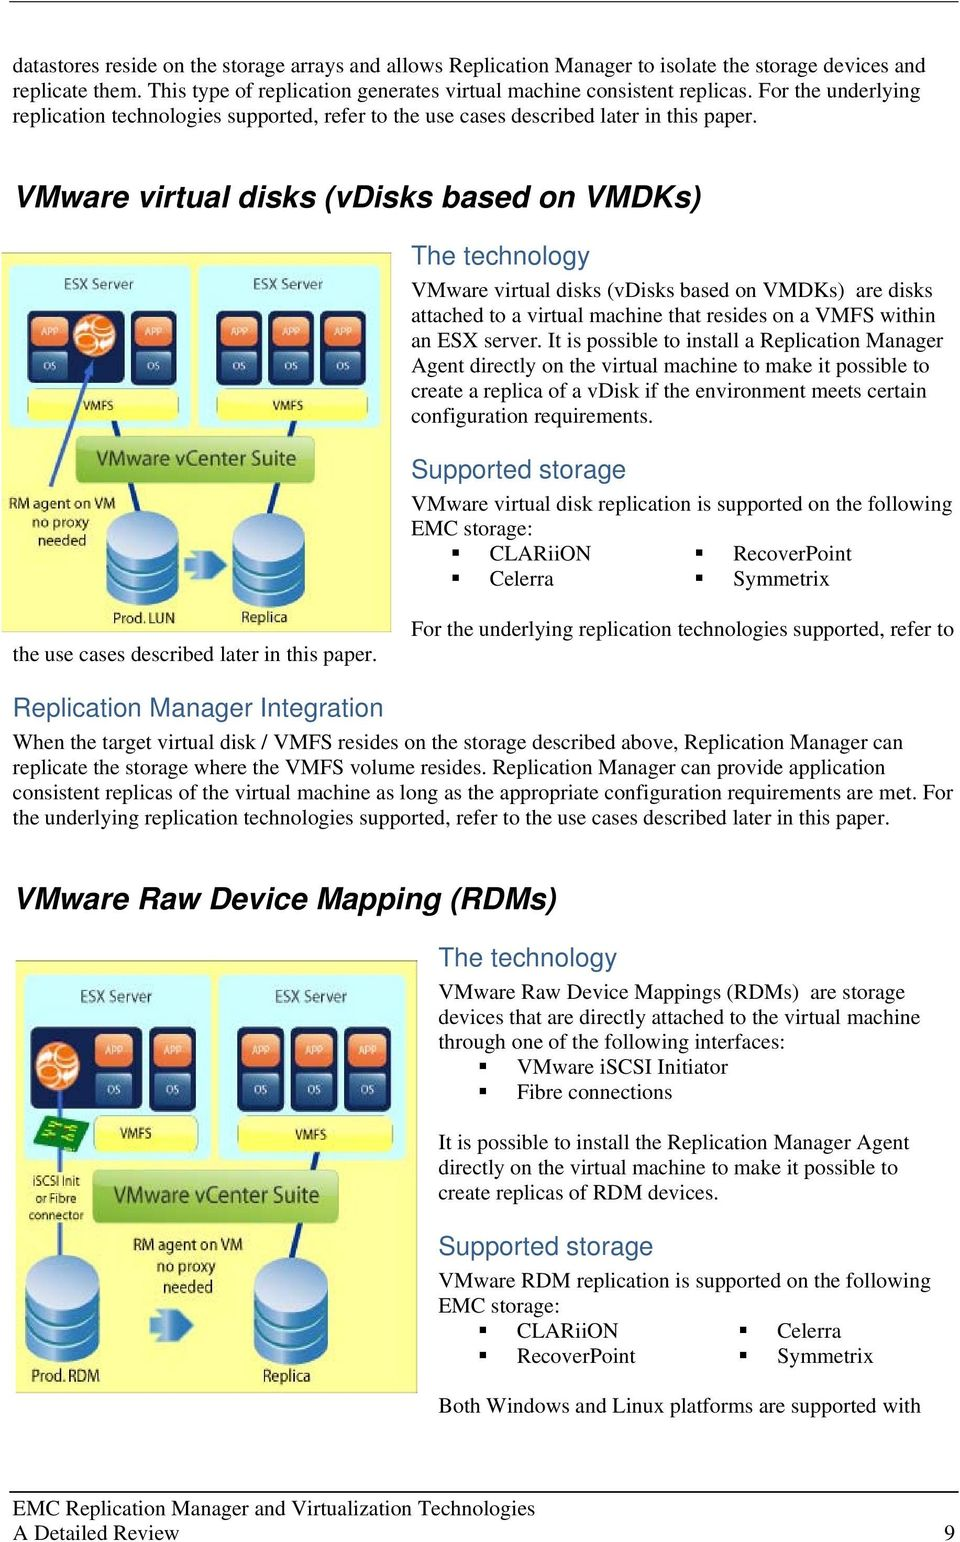 VMware virtual disks (vdisks based on VMDKs) The technology VMware virtual disks (vdisks based on VMDKs) are disks attached to a virtual machine that resides on a VMFS within an ESX server.